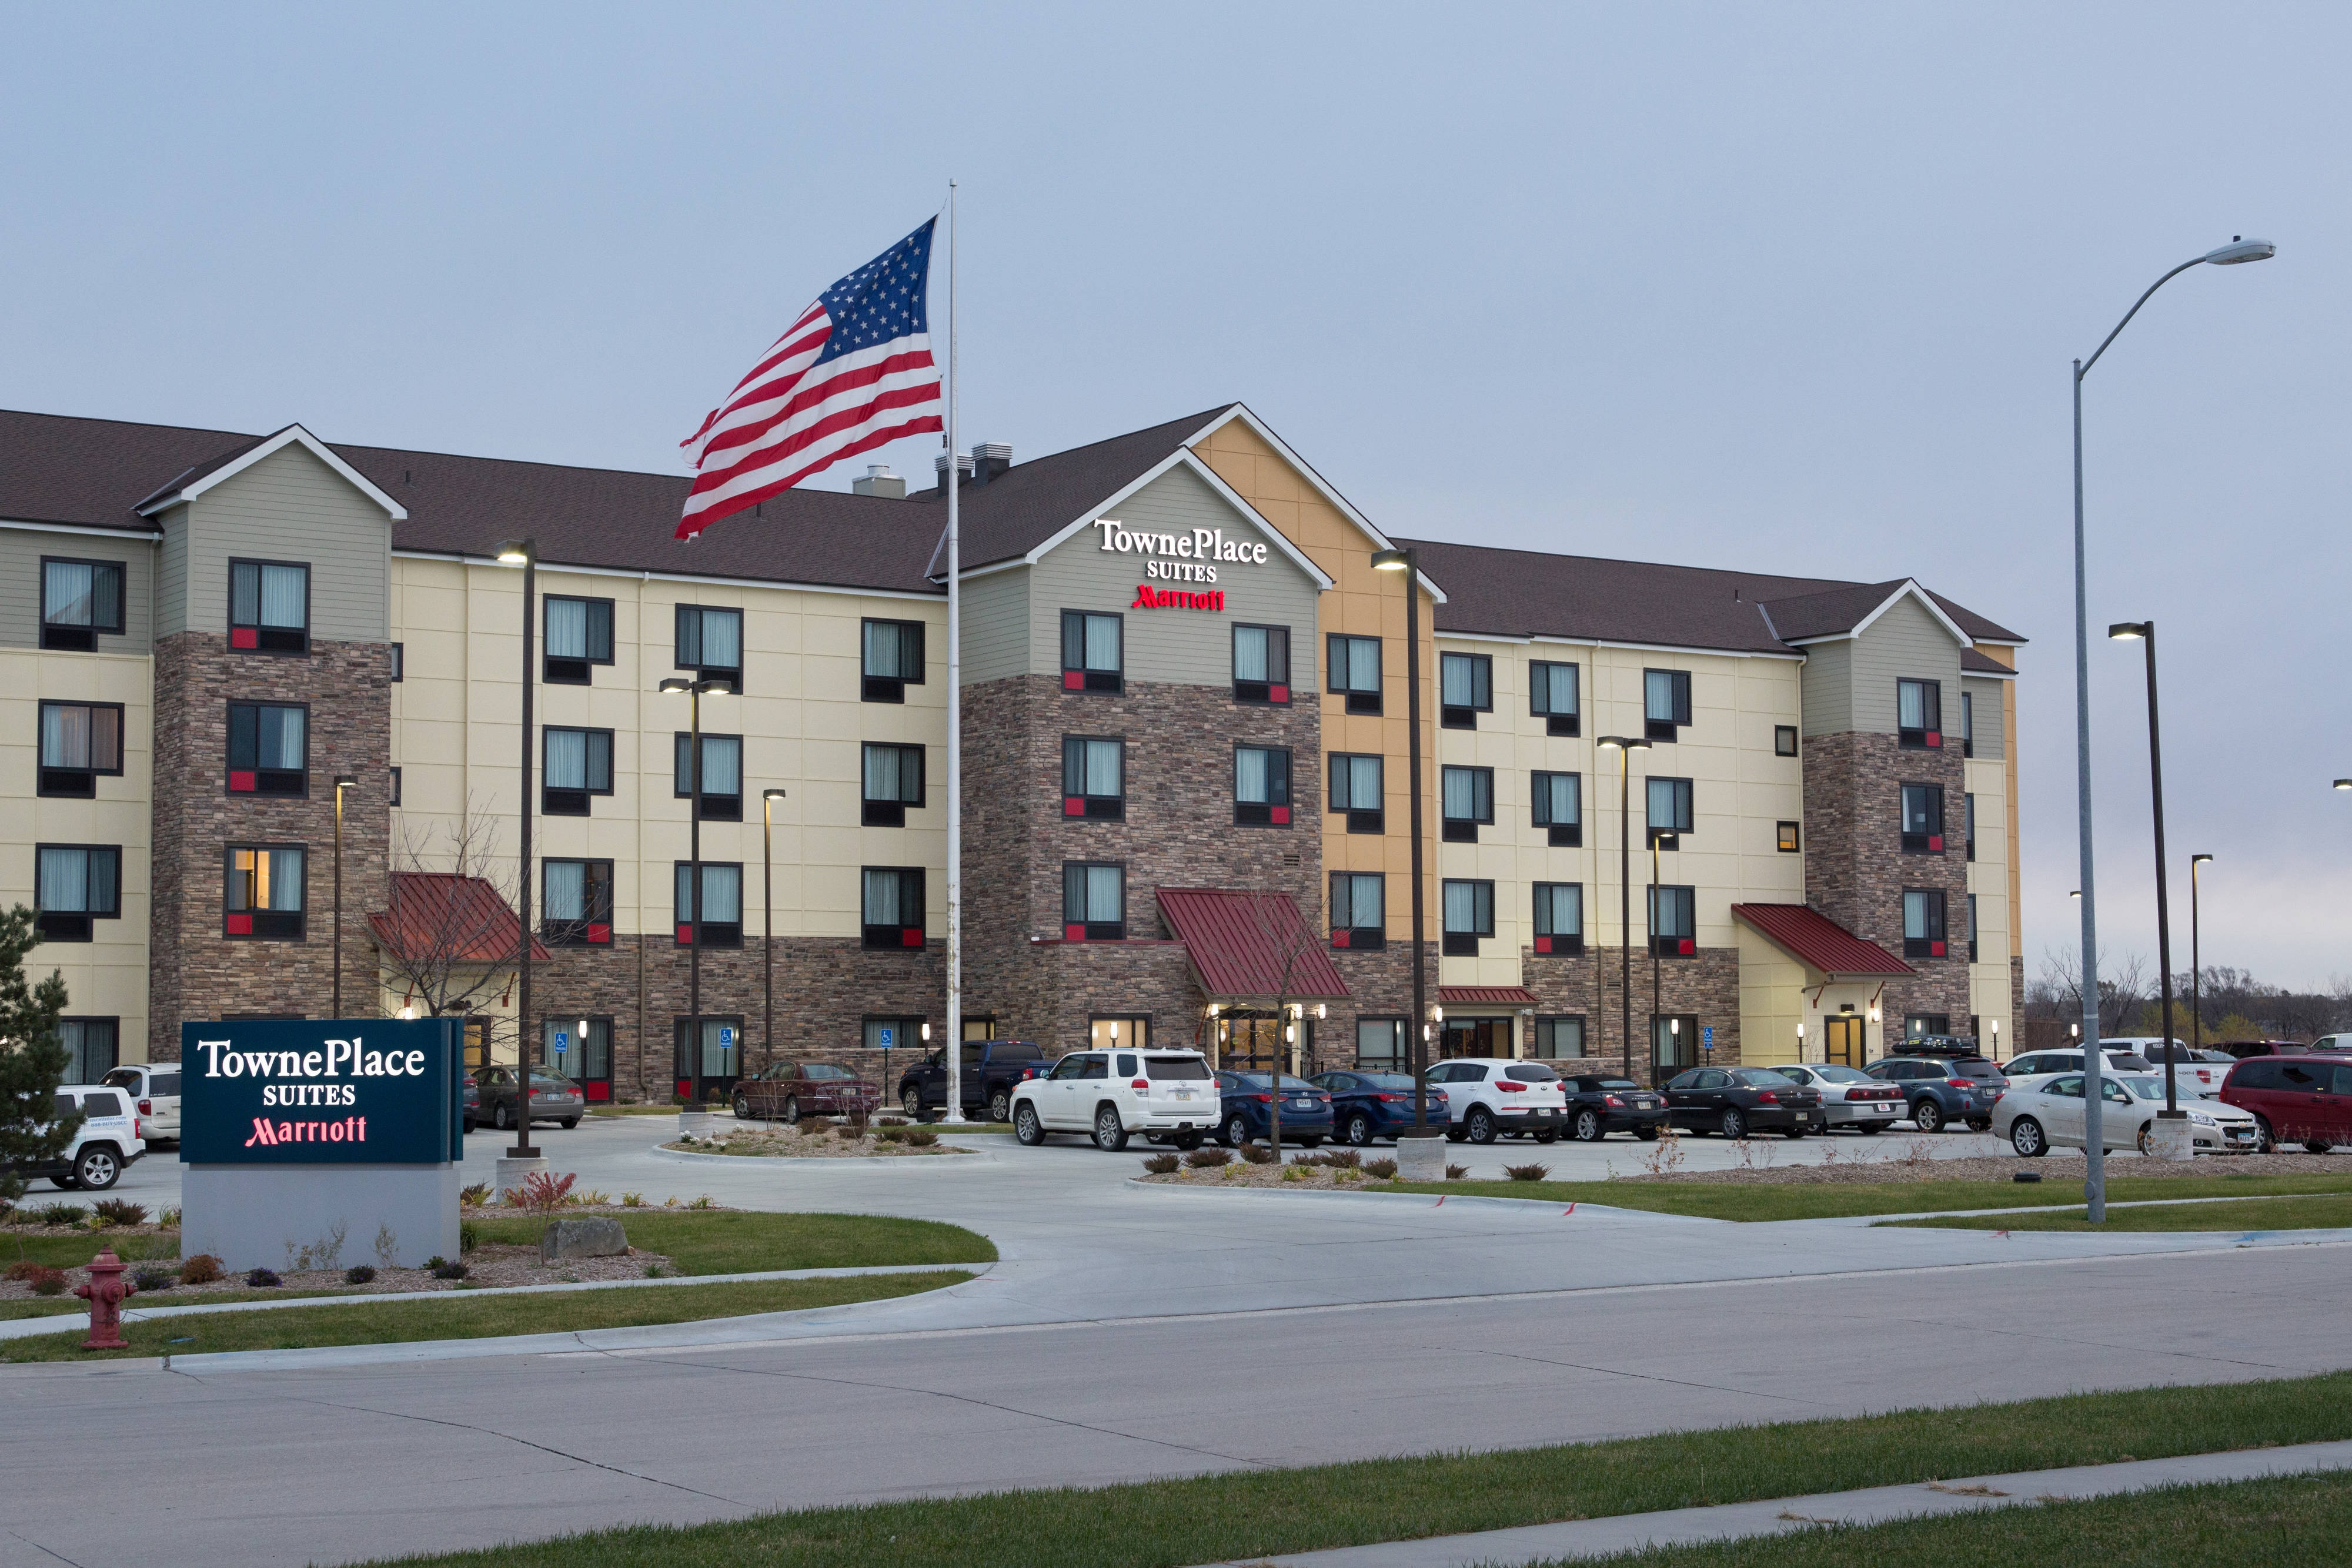 Lincoln Nebraska TownePlace Suites Entrance